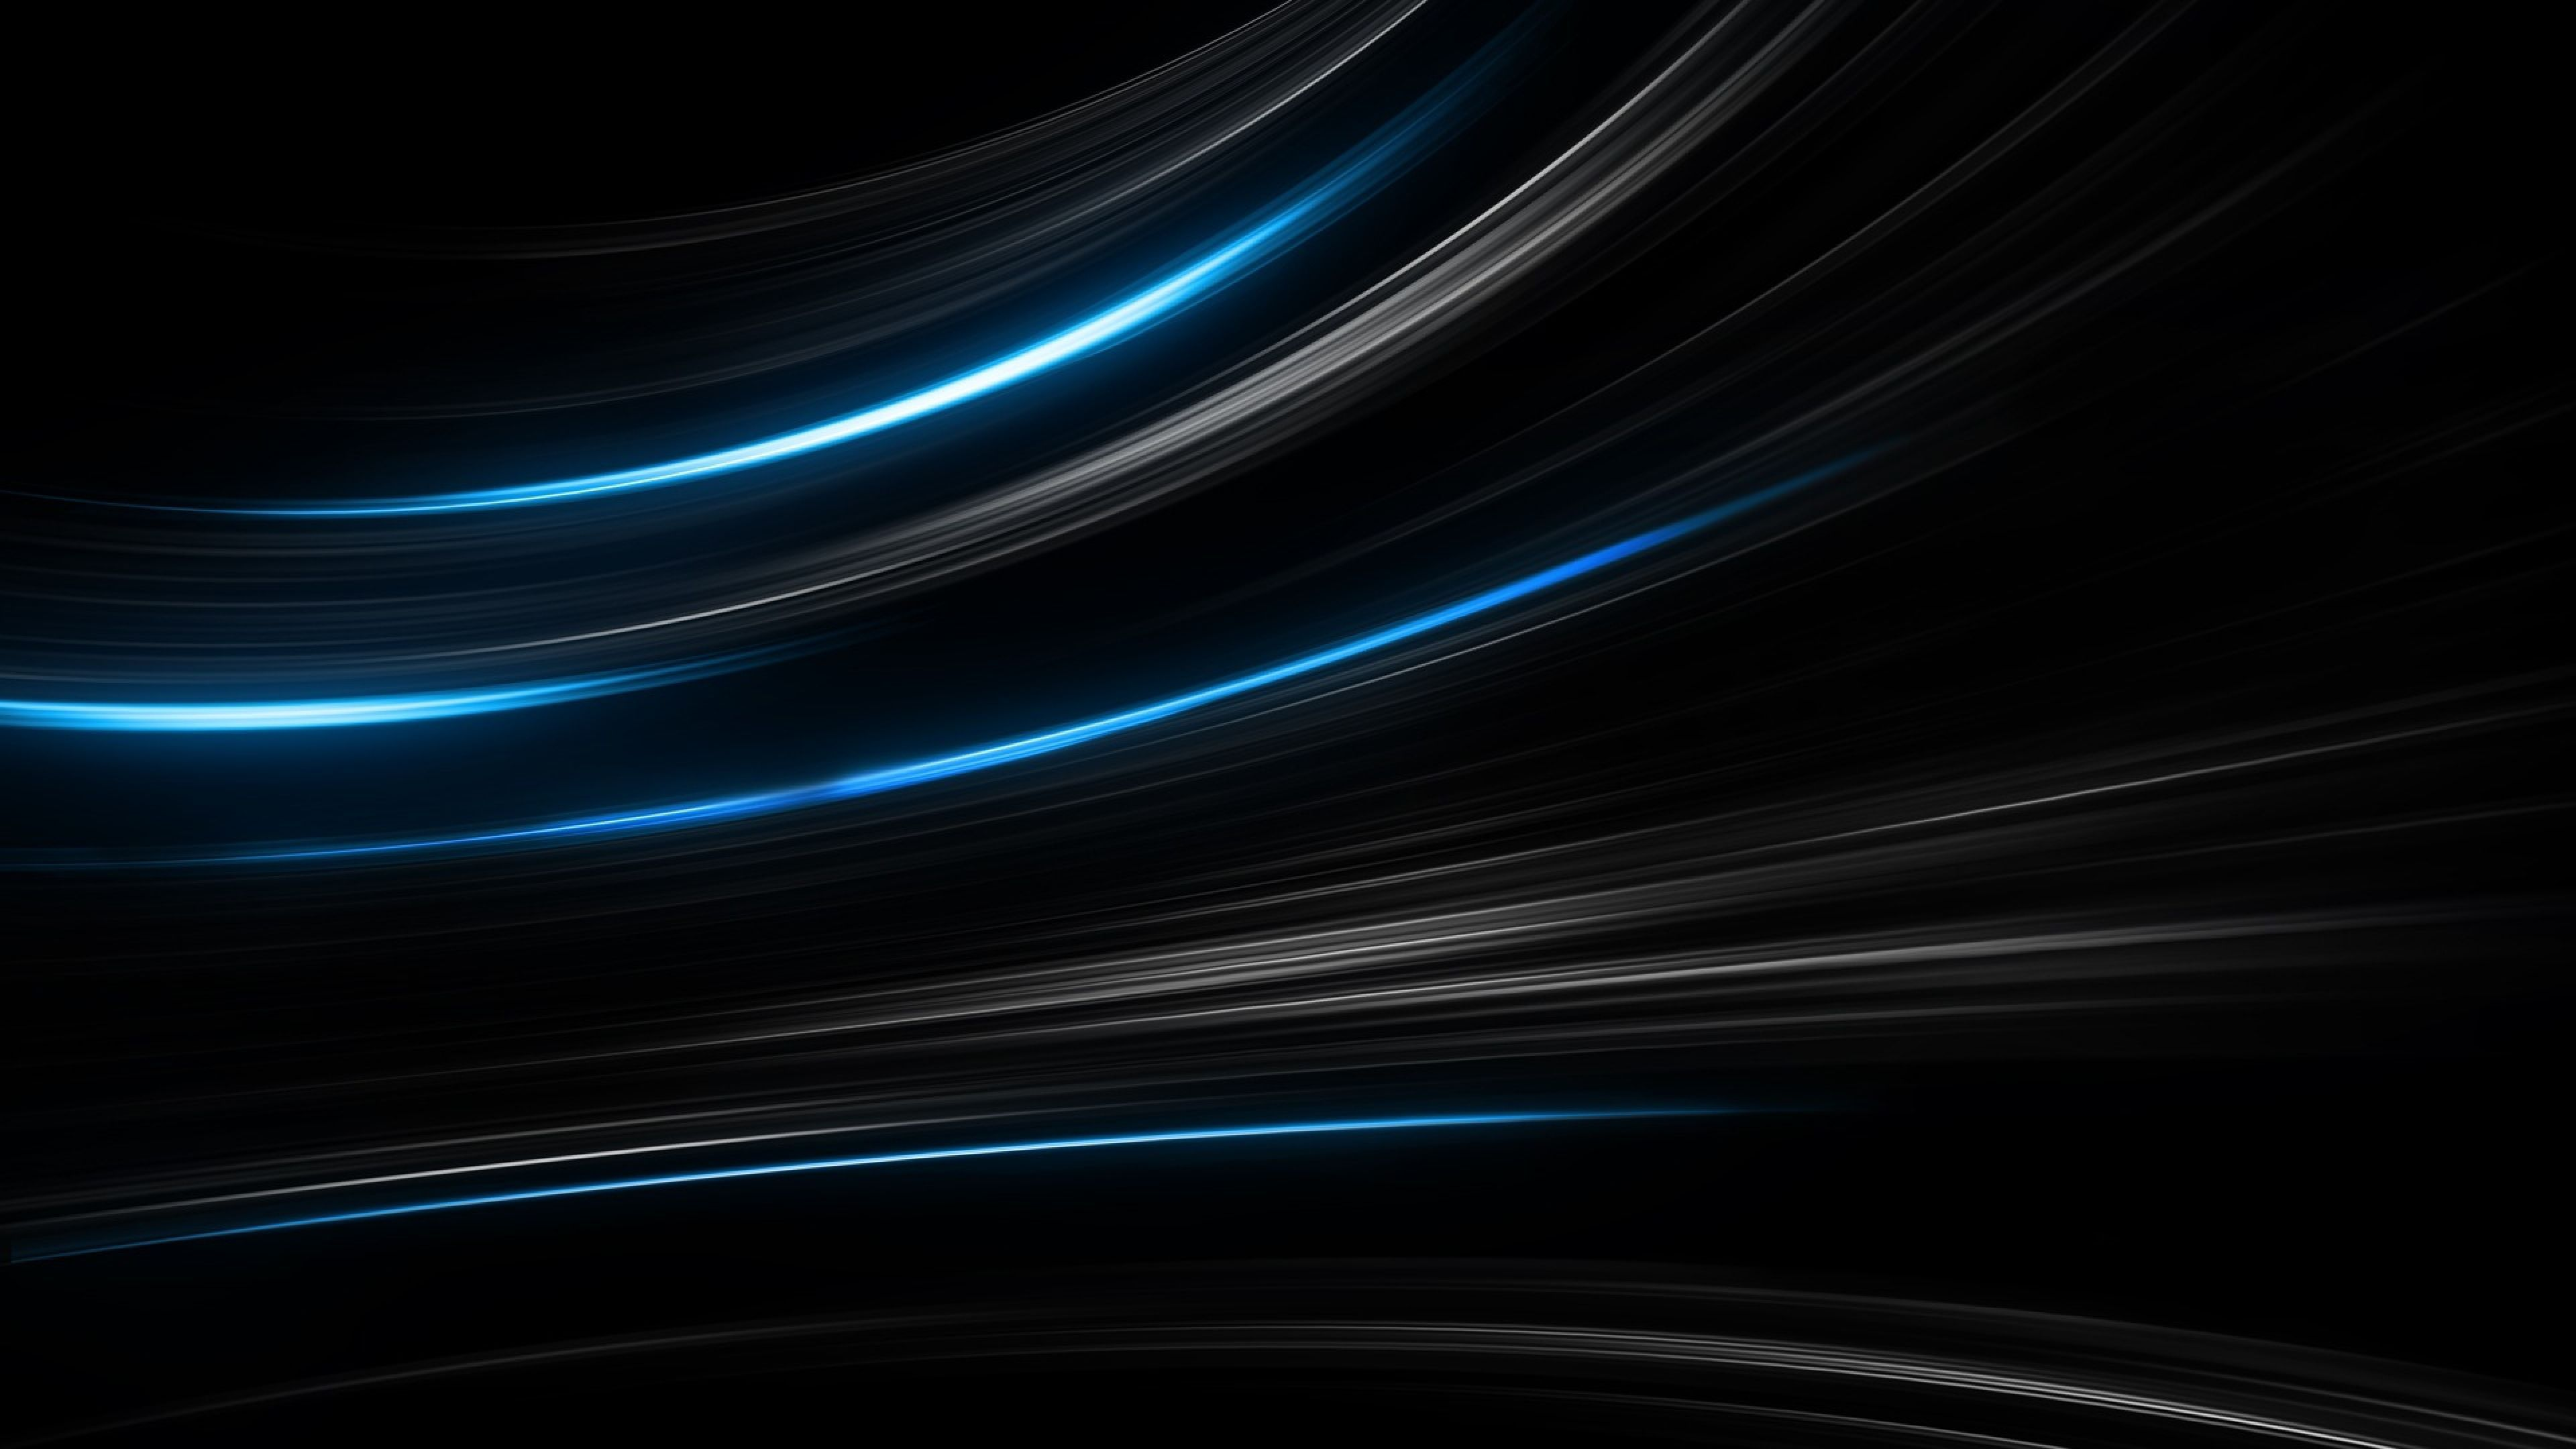 Black Abstract Ultra Hd Wallpaper Black And Blue Wallpaper Dark Blue Wallpaper Blue Wallpapers